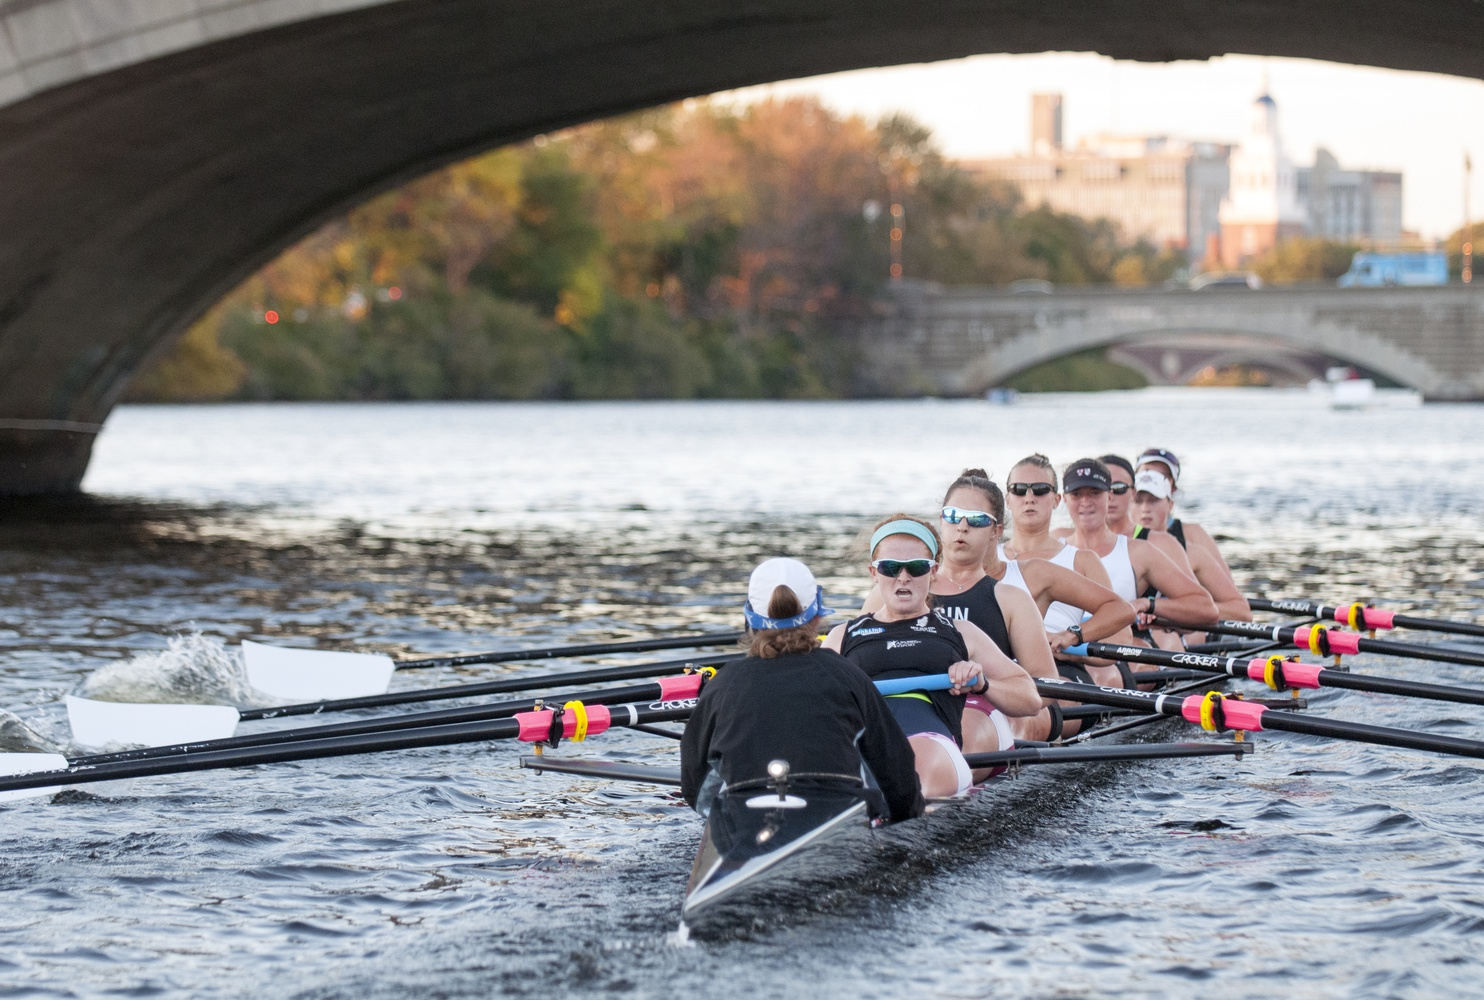 The women's heavyweight crew bested the field this weekend at Eastern Springs, rebounding from a loss to Yale last week.